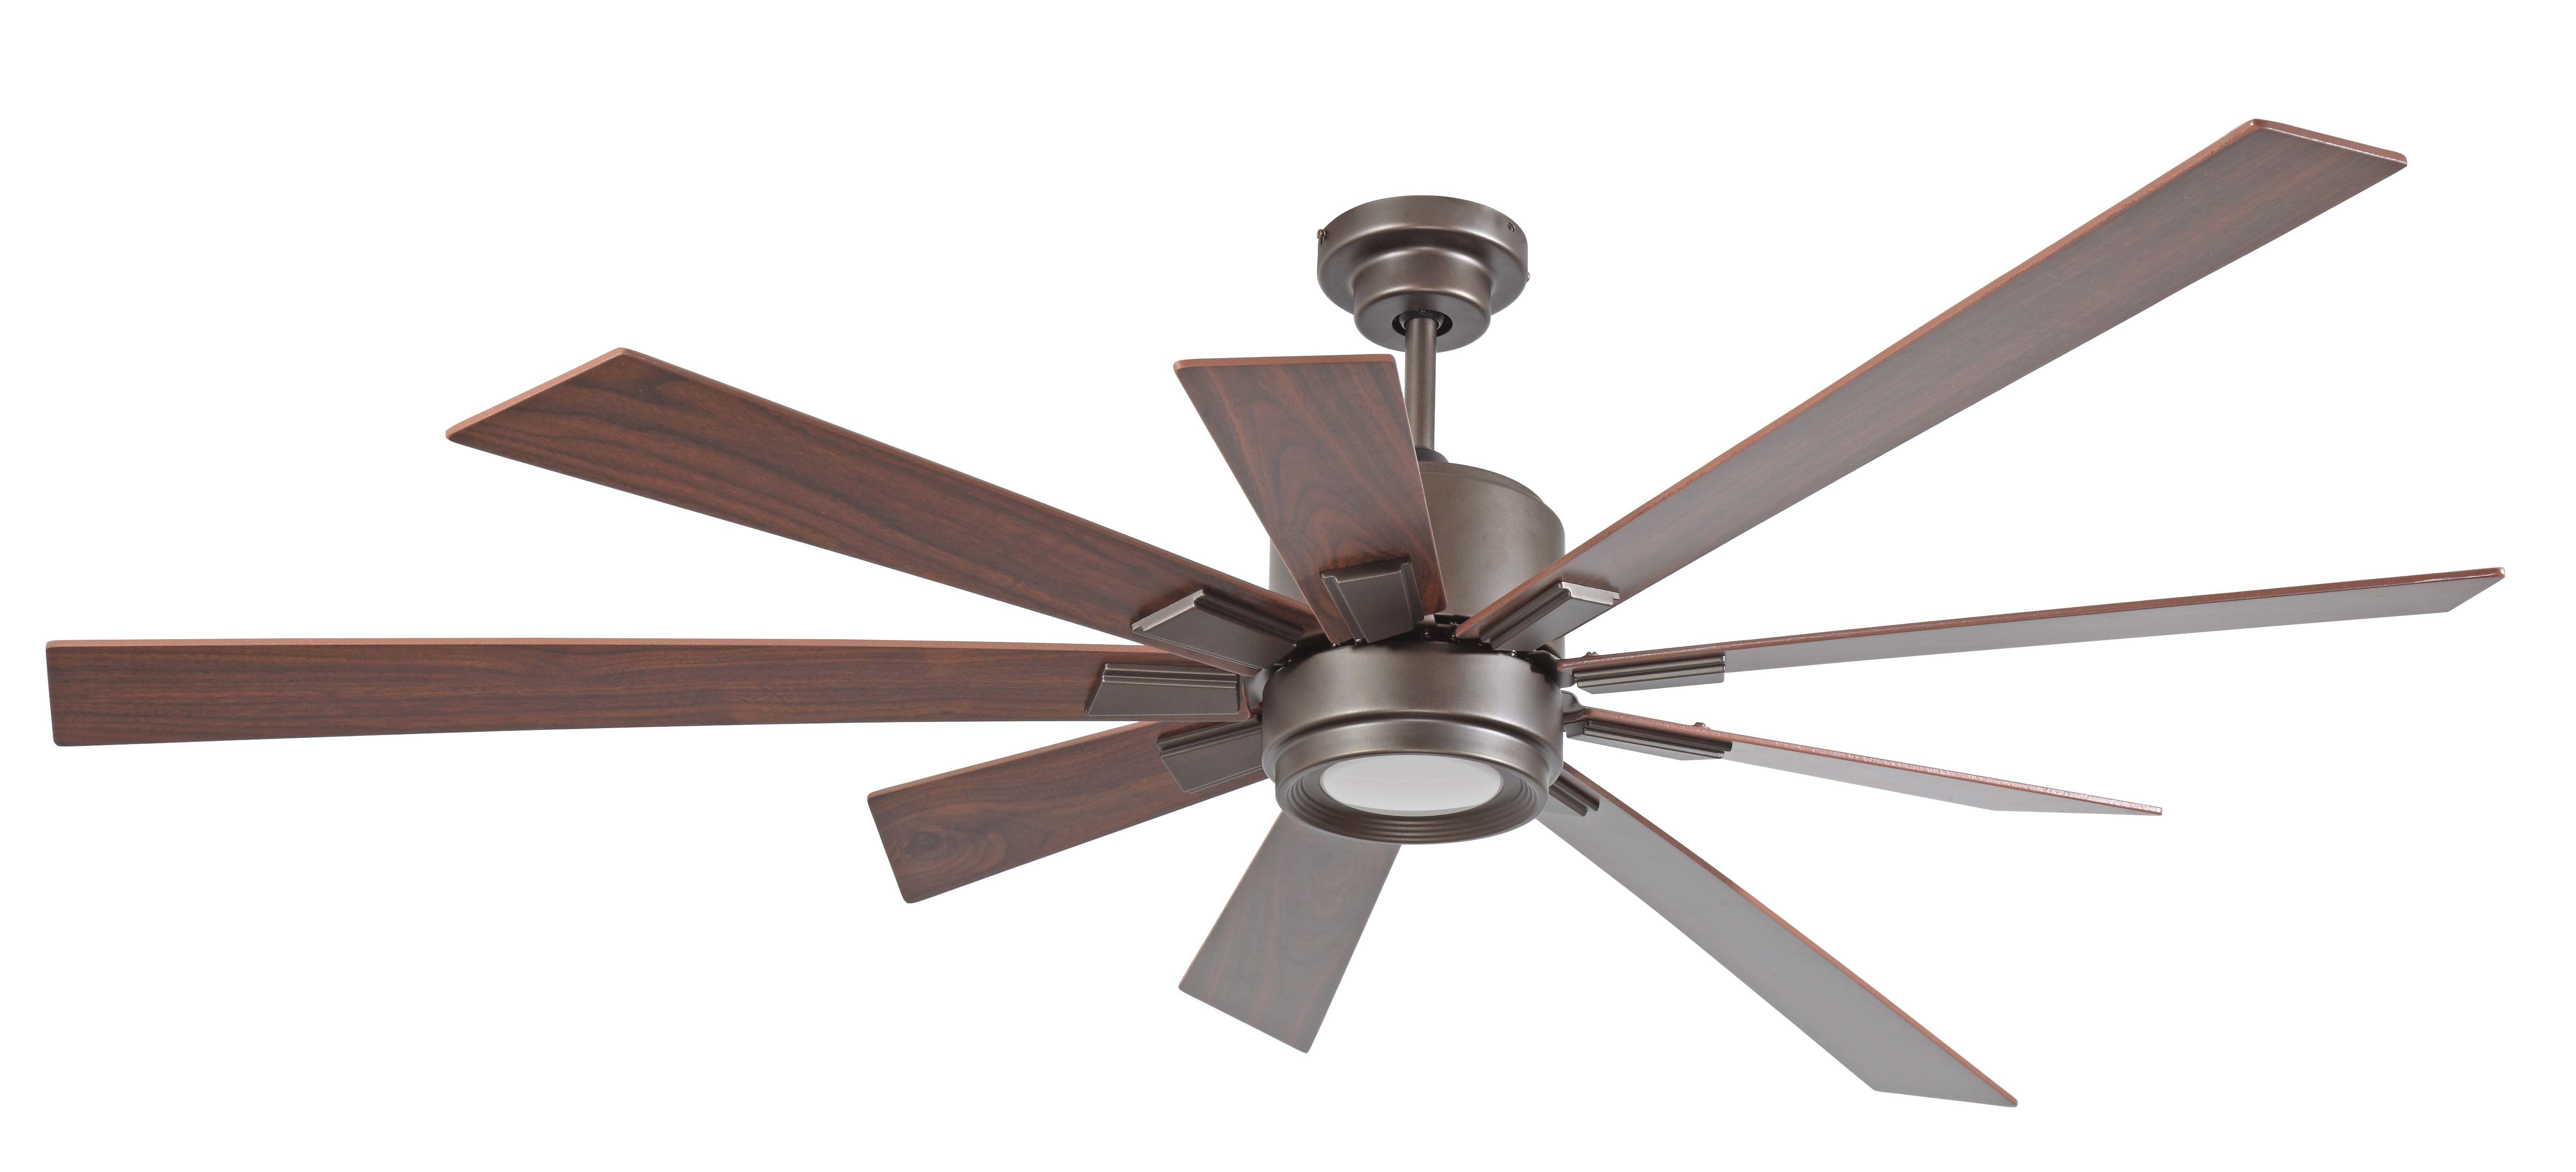 "72"" Birney 9 Blade Ceiling Fan, Light Kit Included With Well Known Bankston 8 Blade Led Ceiling Fans (Gallery 15 of 20)"